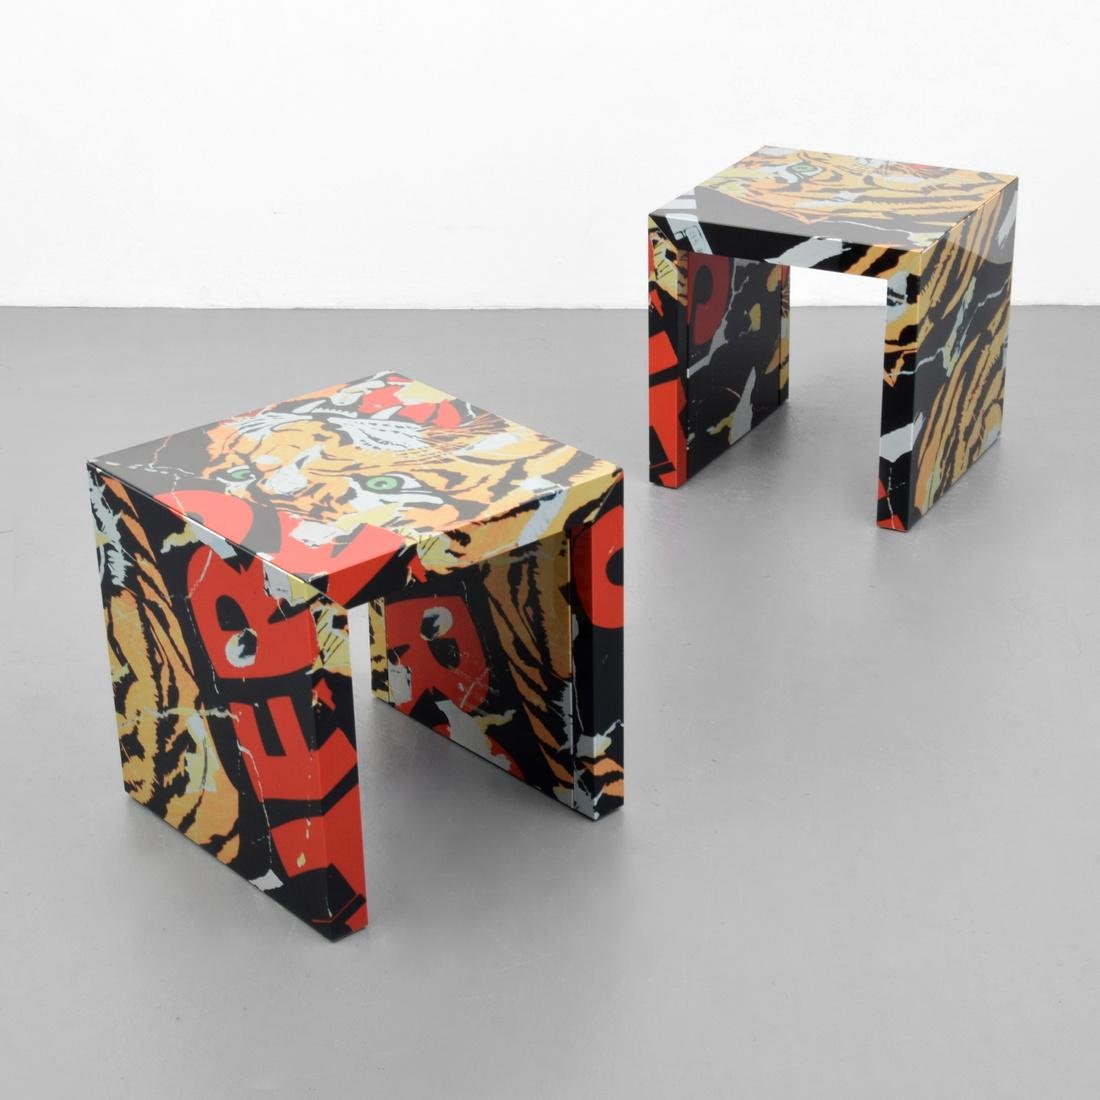 2 Mimmo Rotella & Marco Ferreri End Tables, Limited Ed.